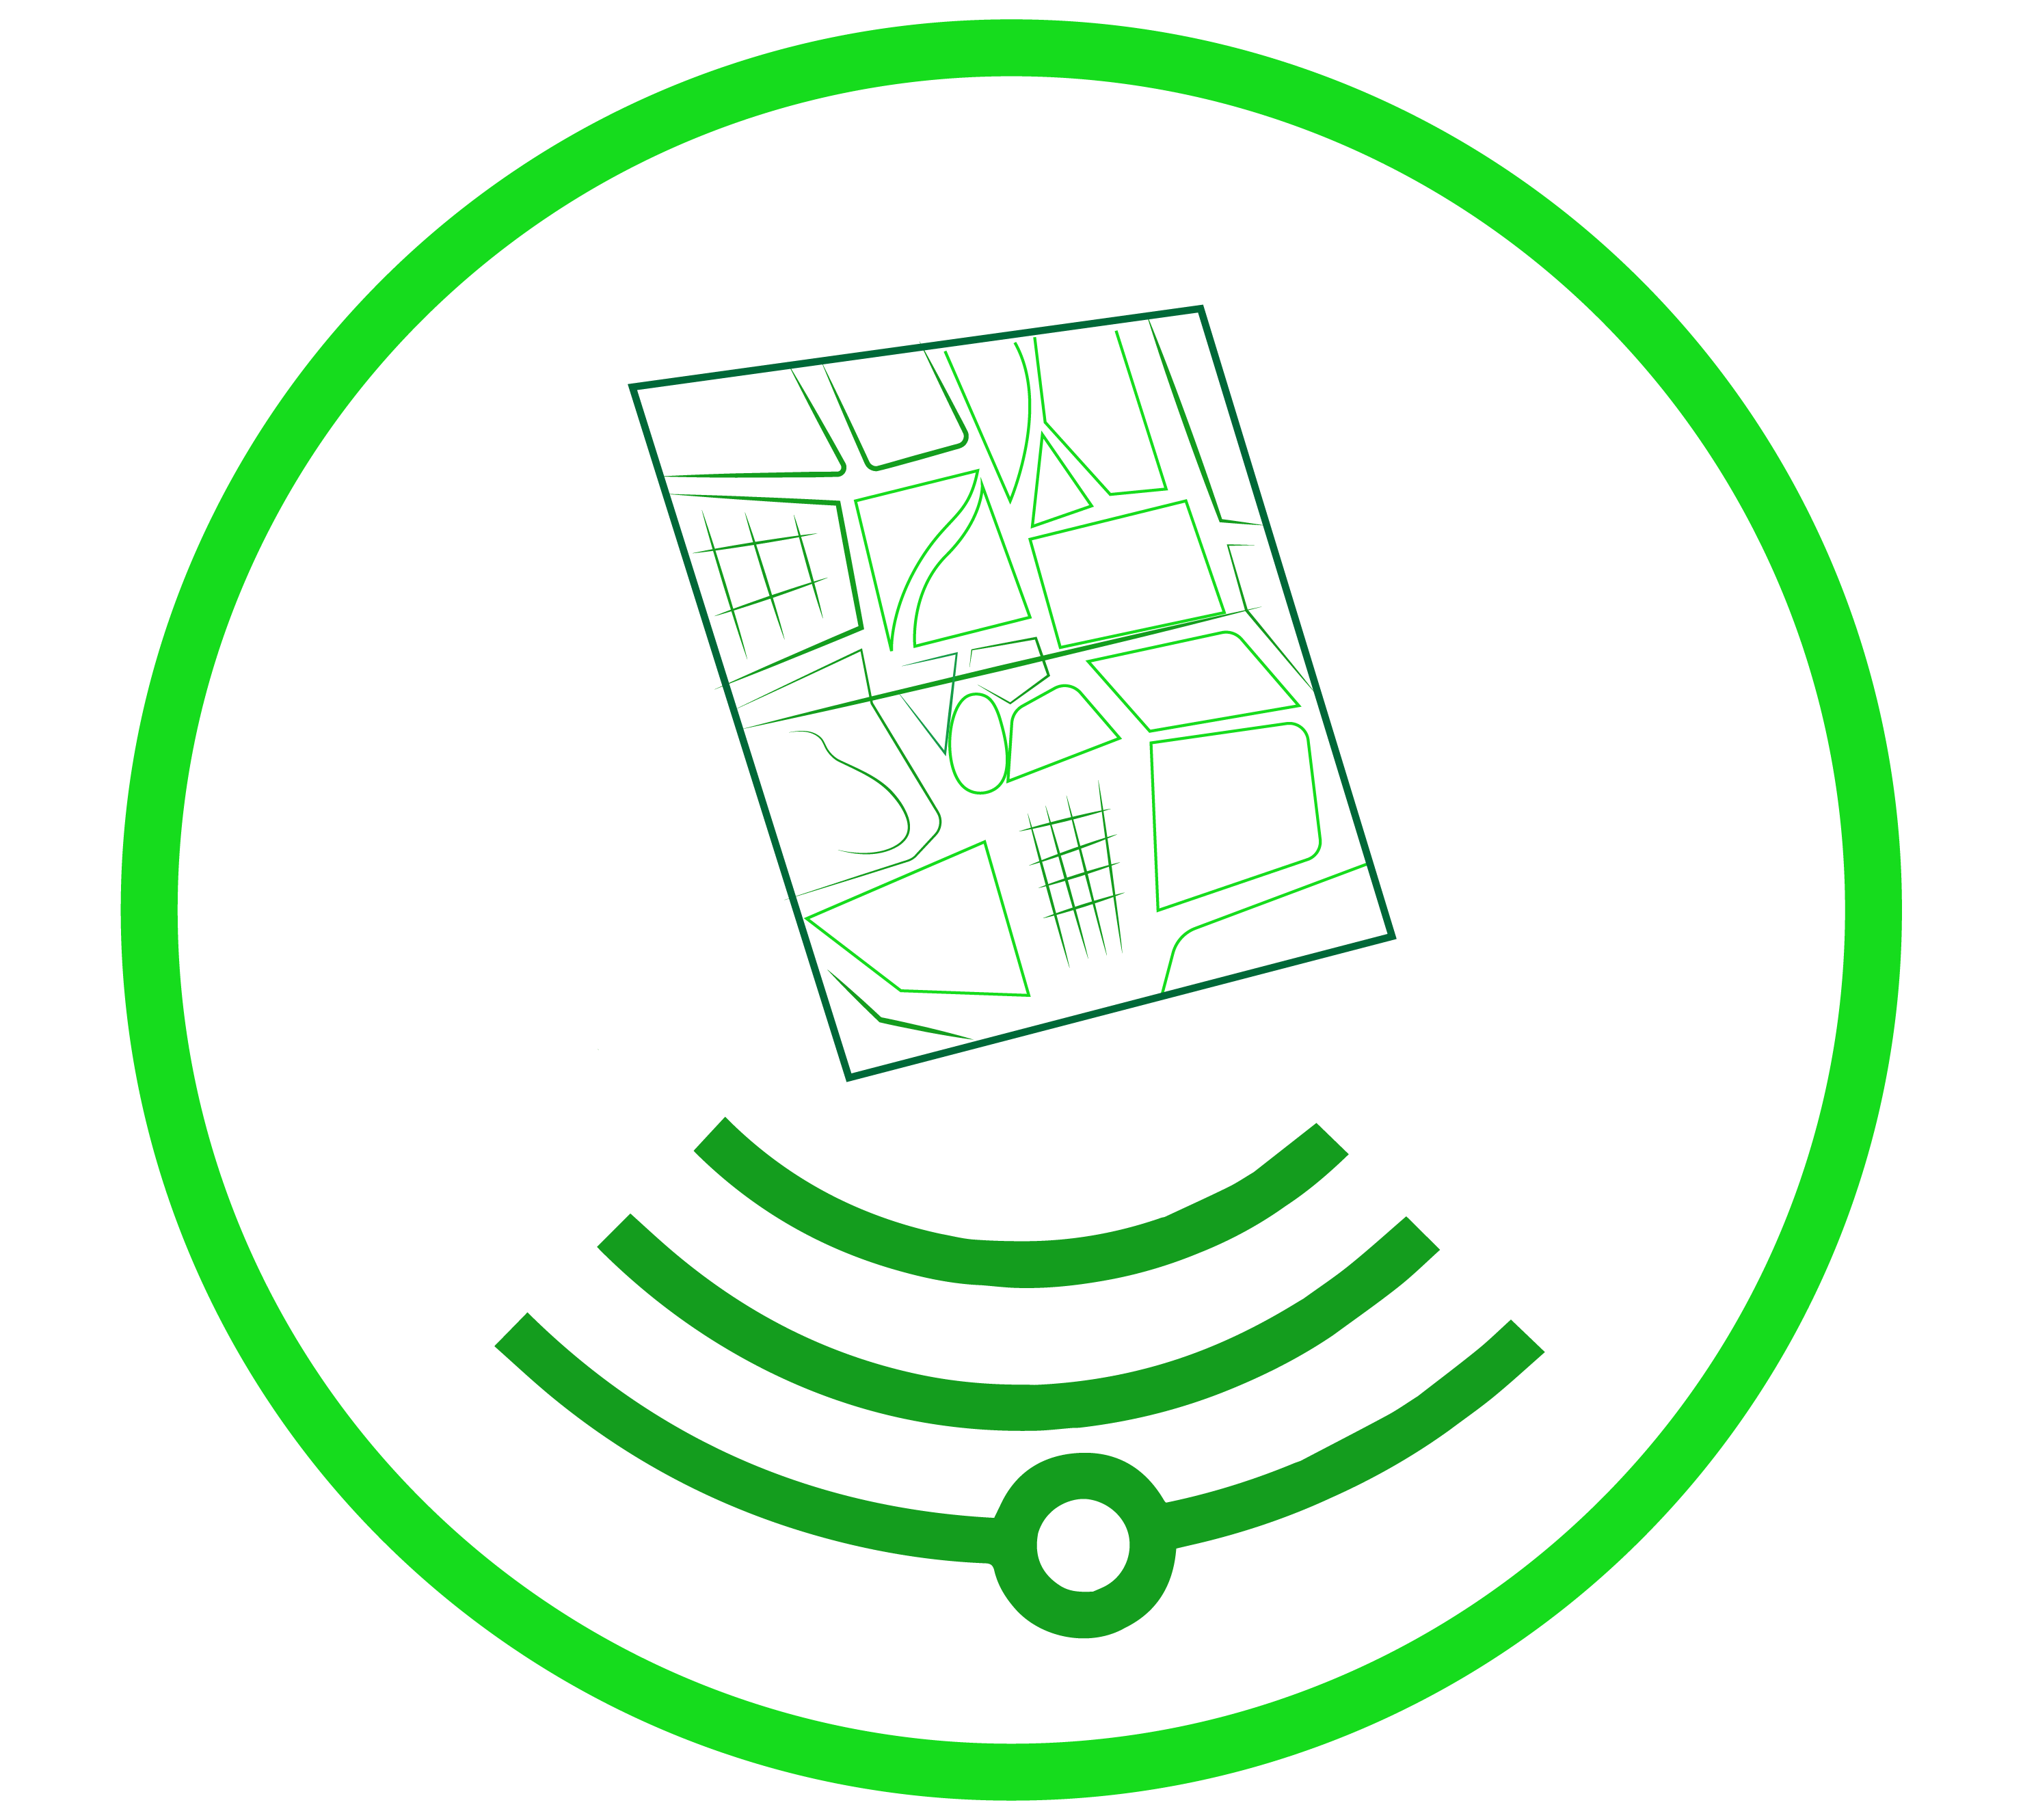 autoCAD or CAD mapping utility mapping service icon